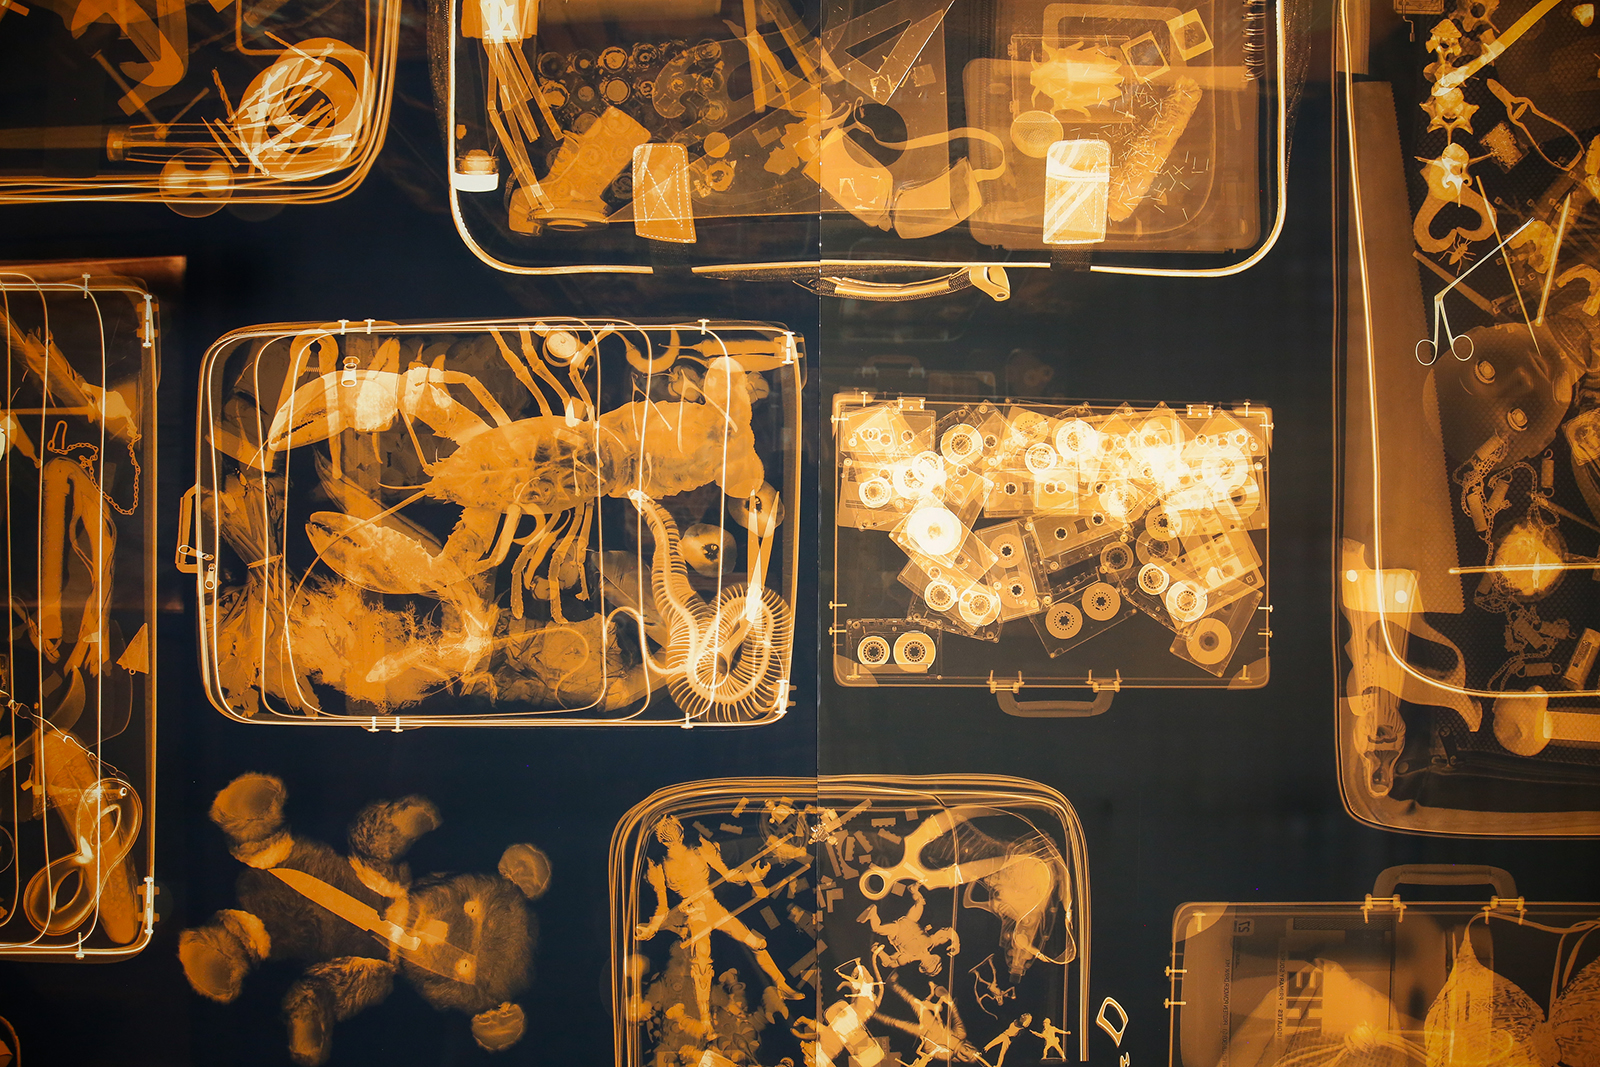 Detail of a backlit mural of x-rayed luggage, revealing surprising contents like a briefcase full of cassette tapes, a teddy bear with a knife inside, a suitcase full of sea creatures, and another full of kids toys.